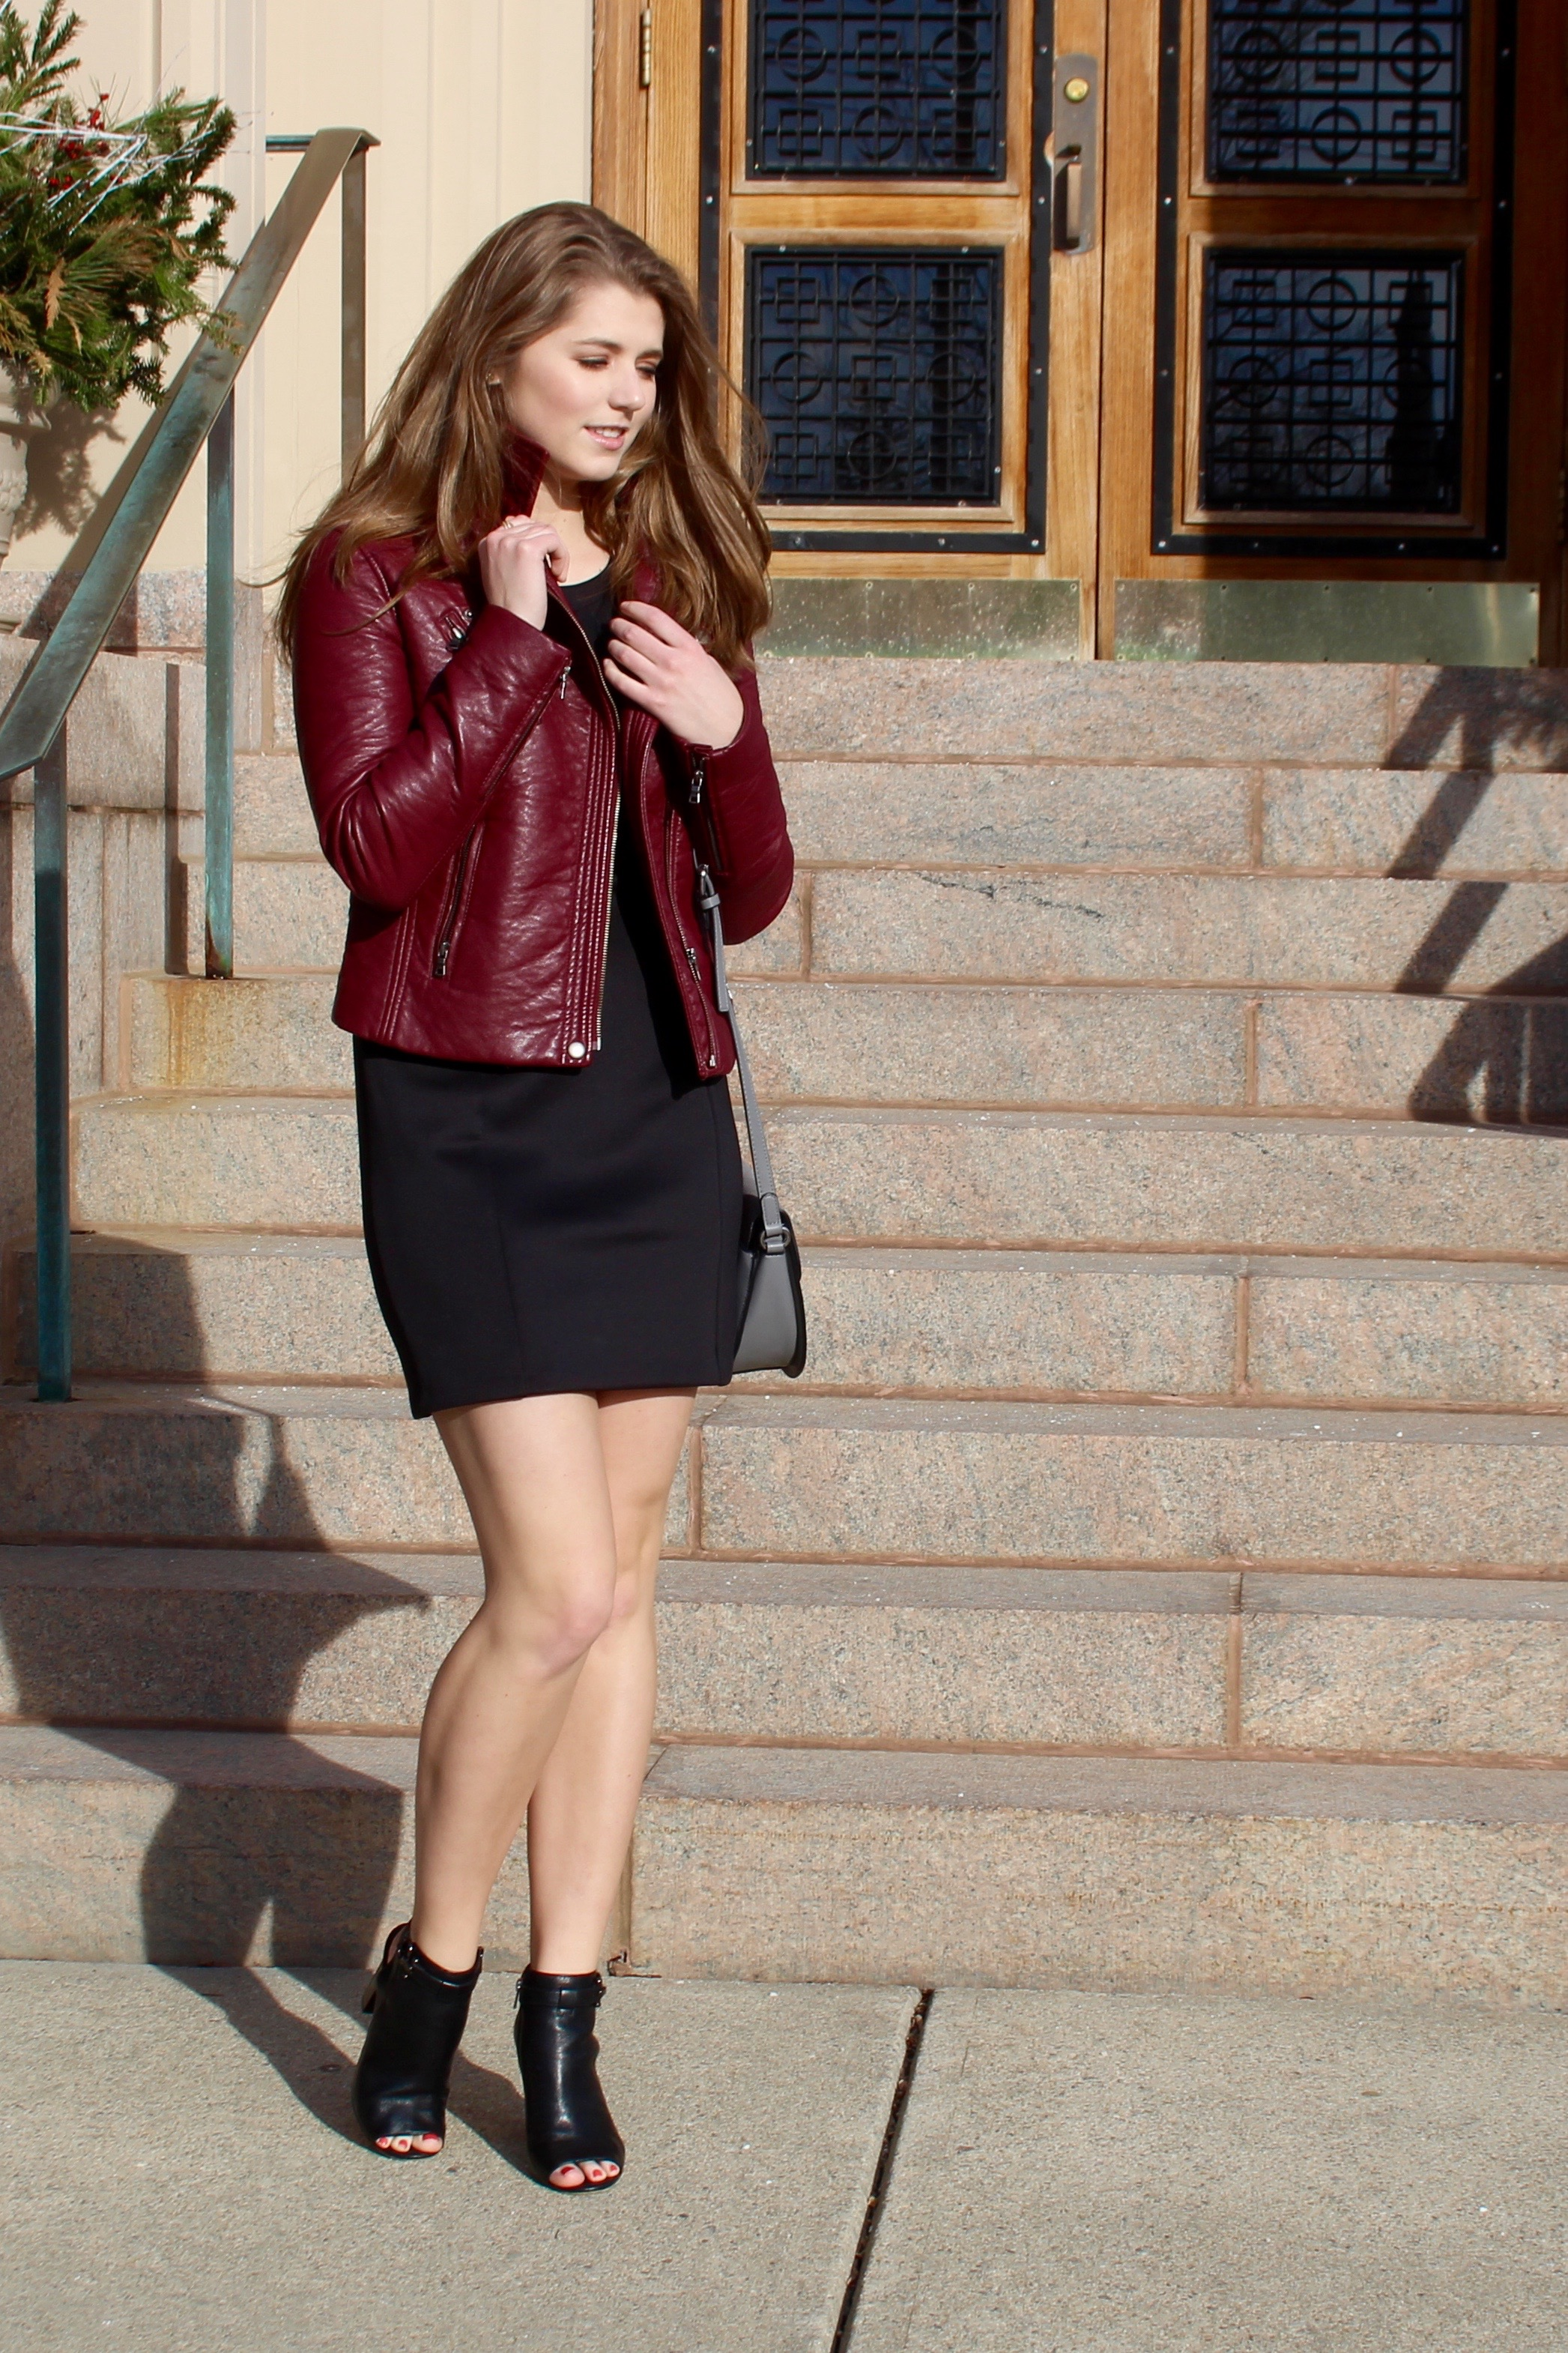 Black leather jacket with a dress